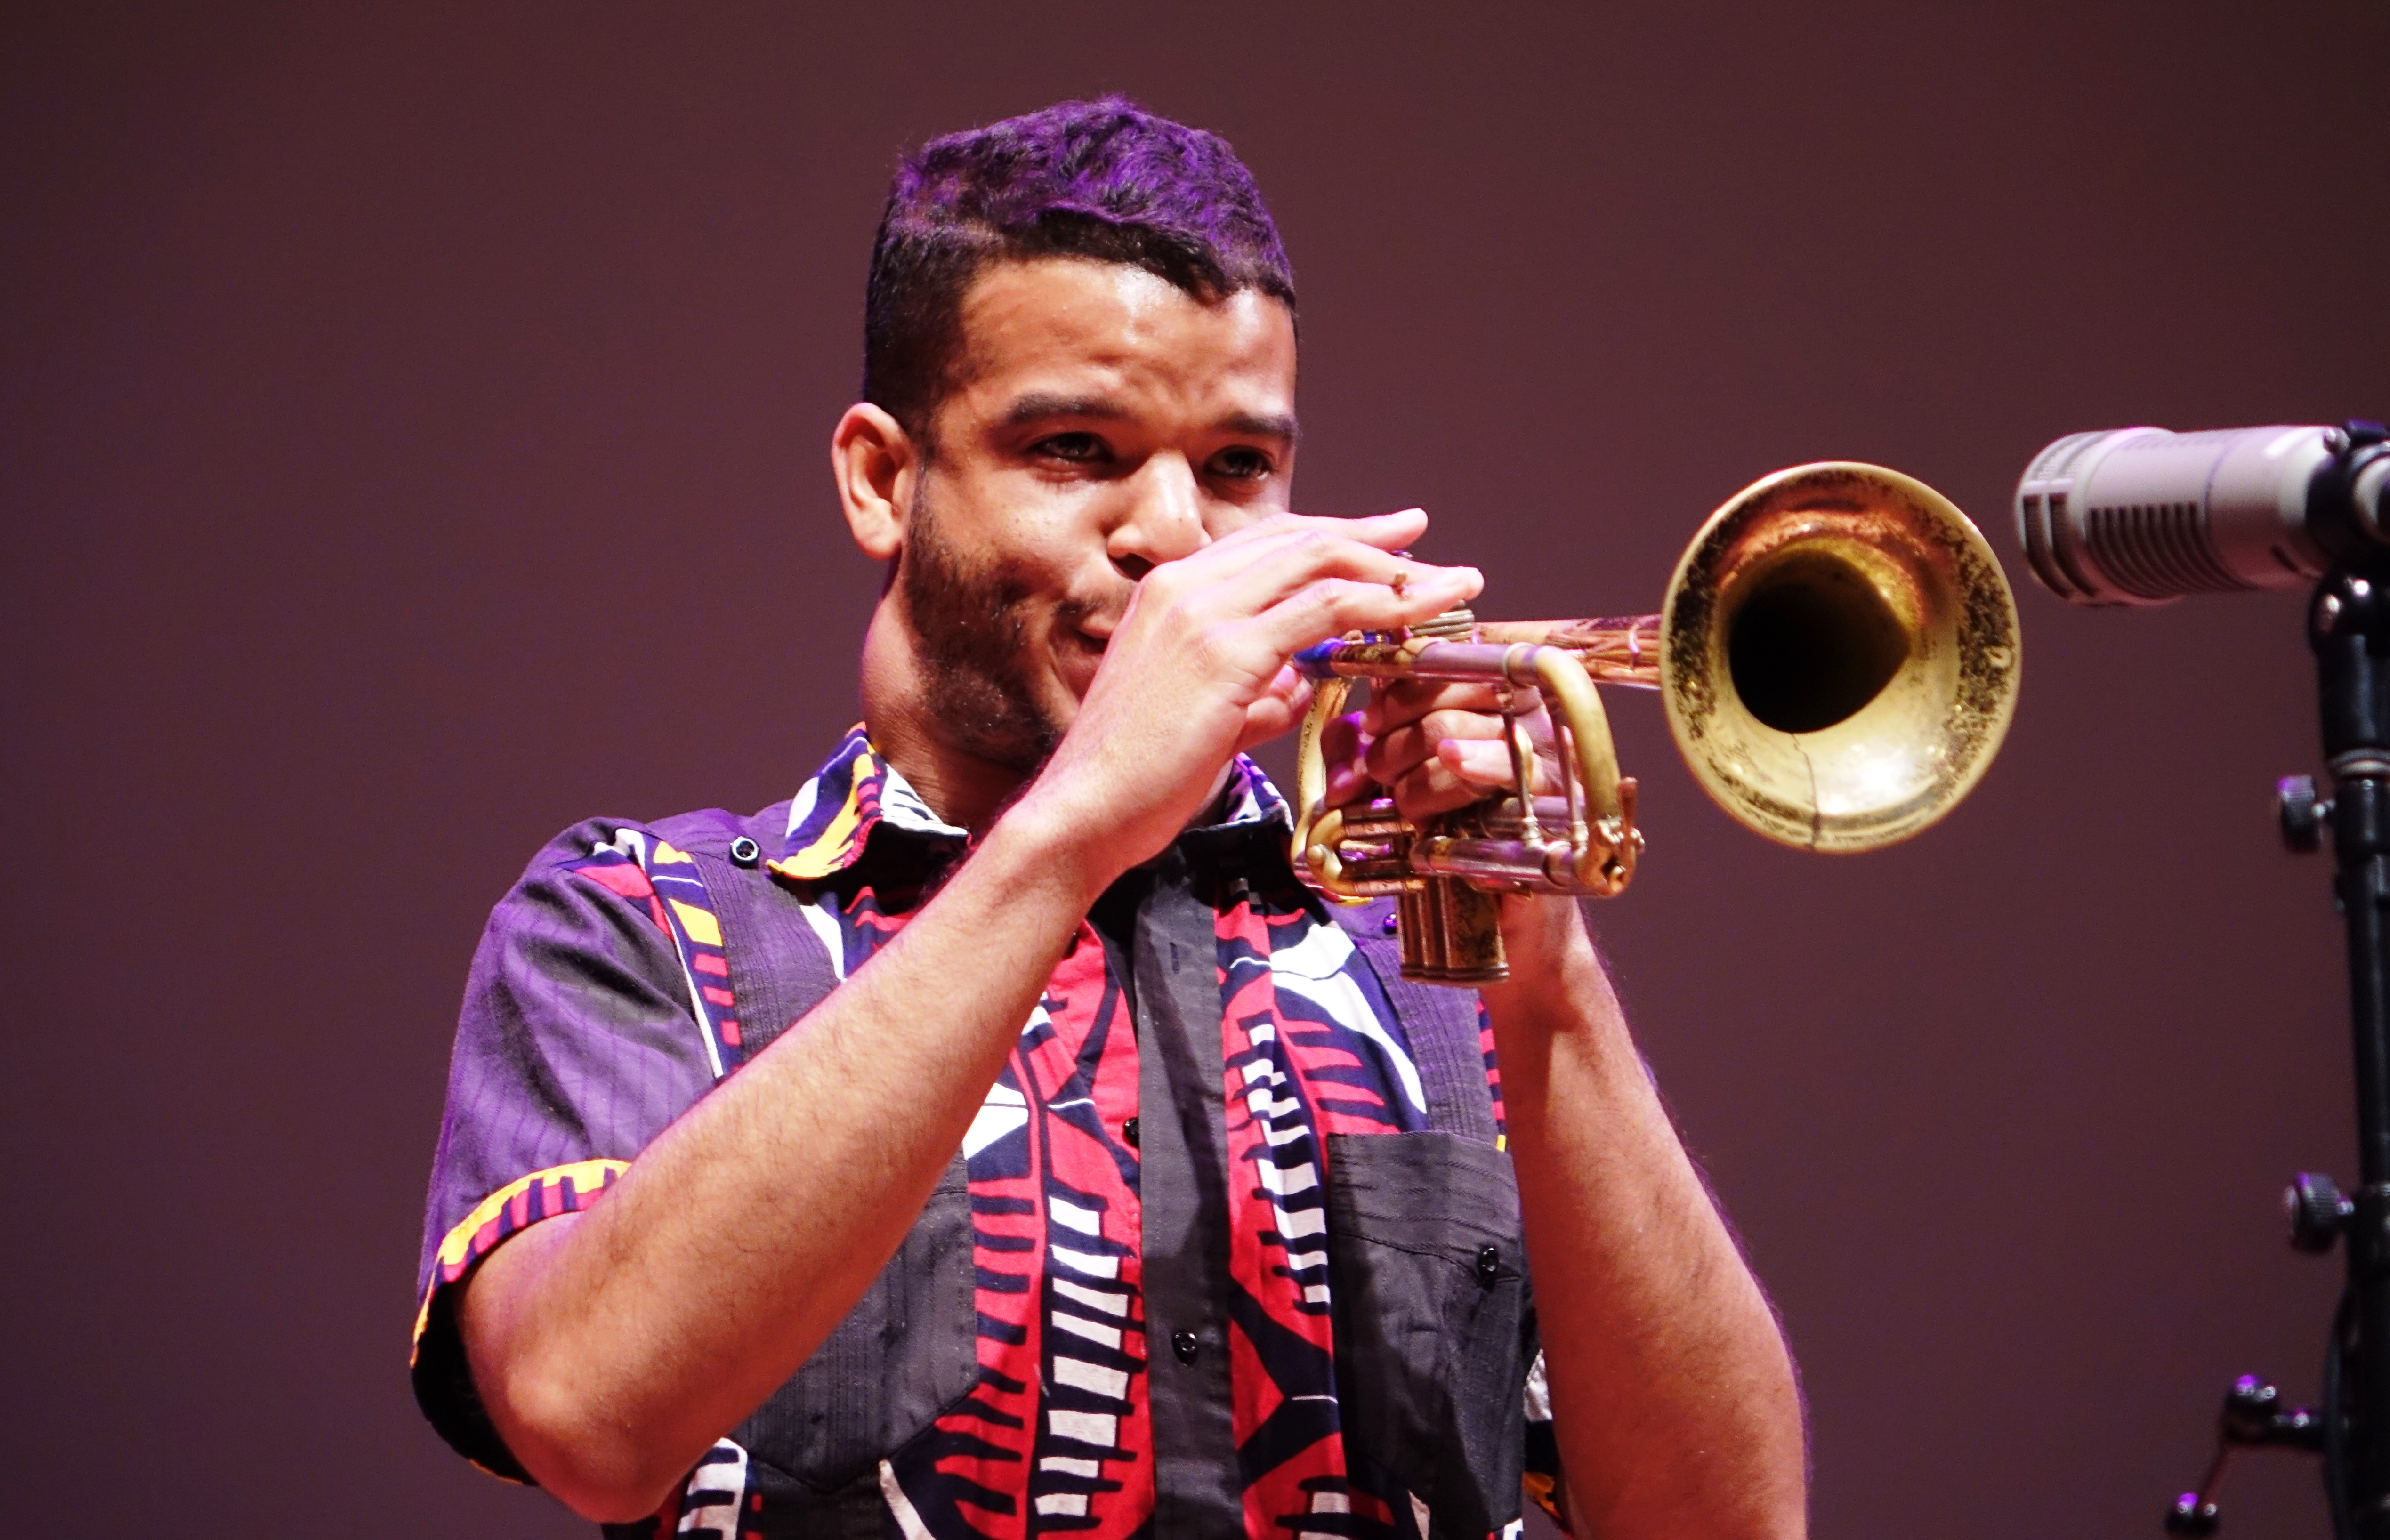 Aquiles Navarro at the Vision Festival at Roulette, Brooklyn in May 2018